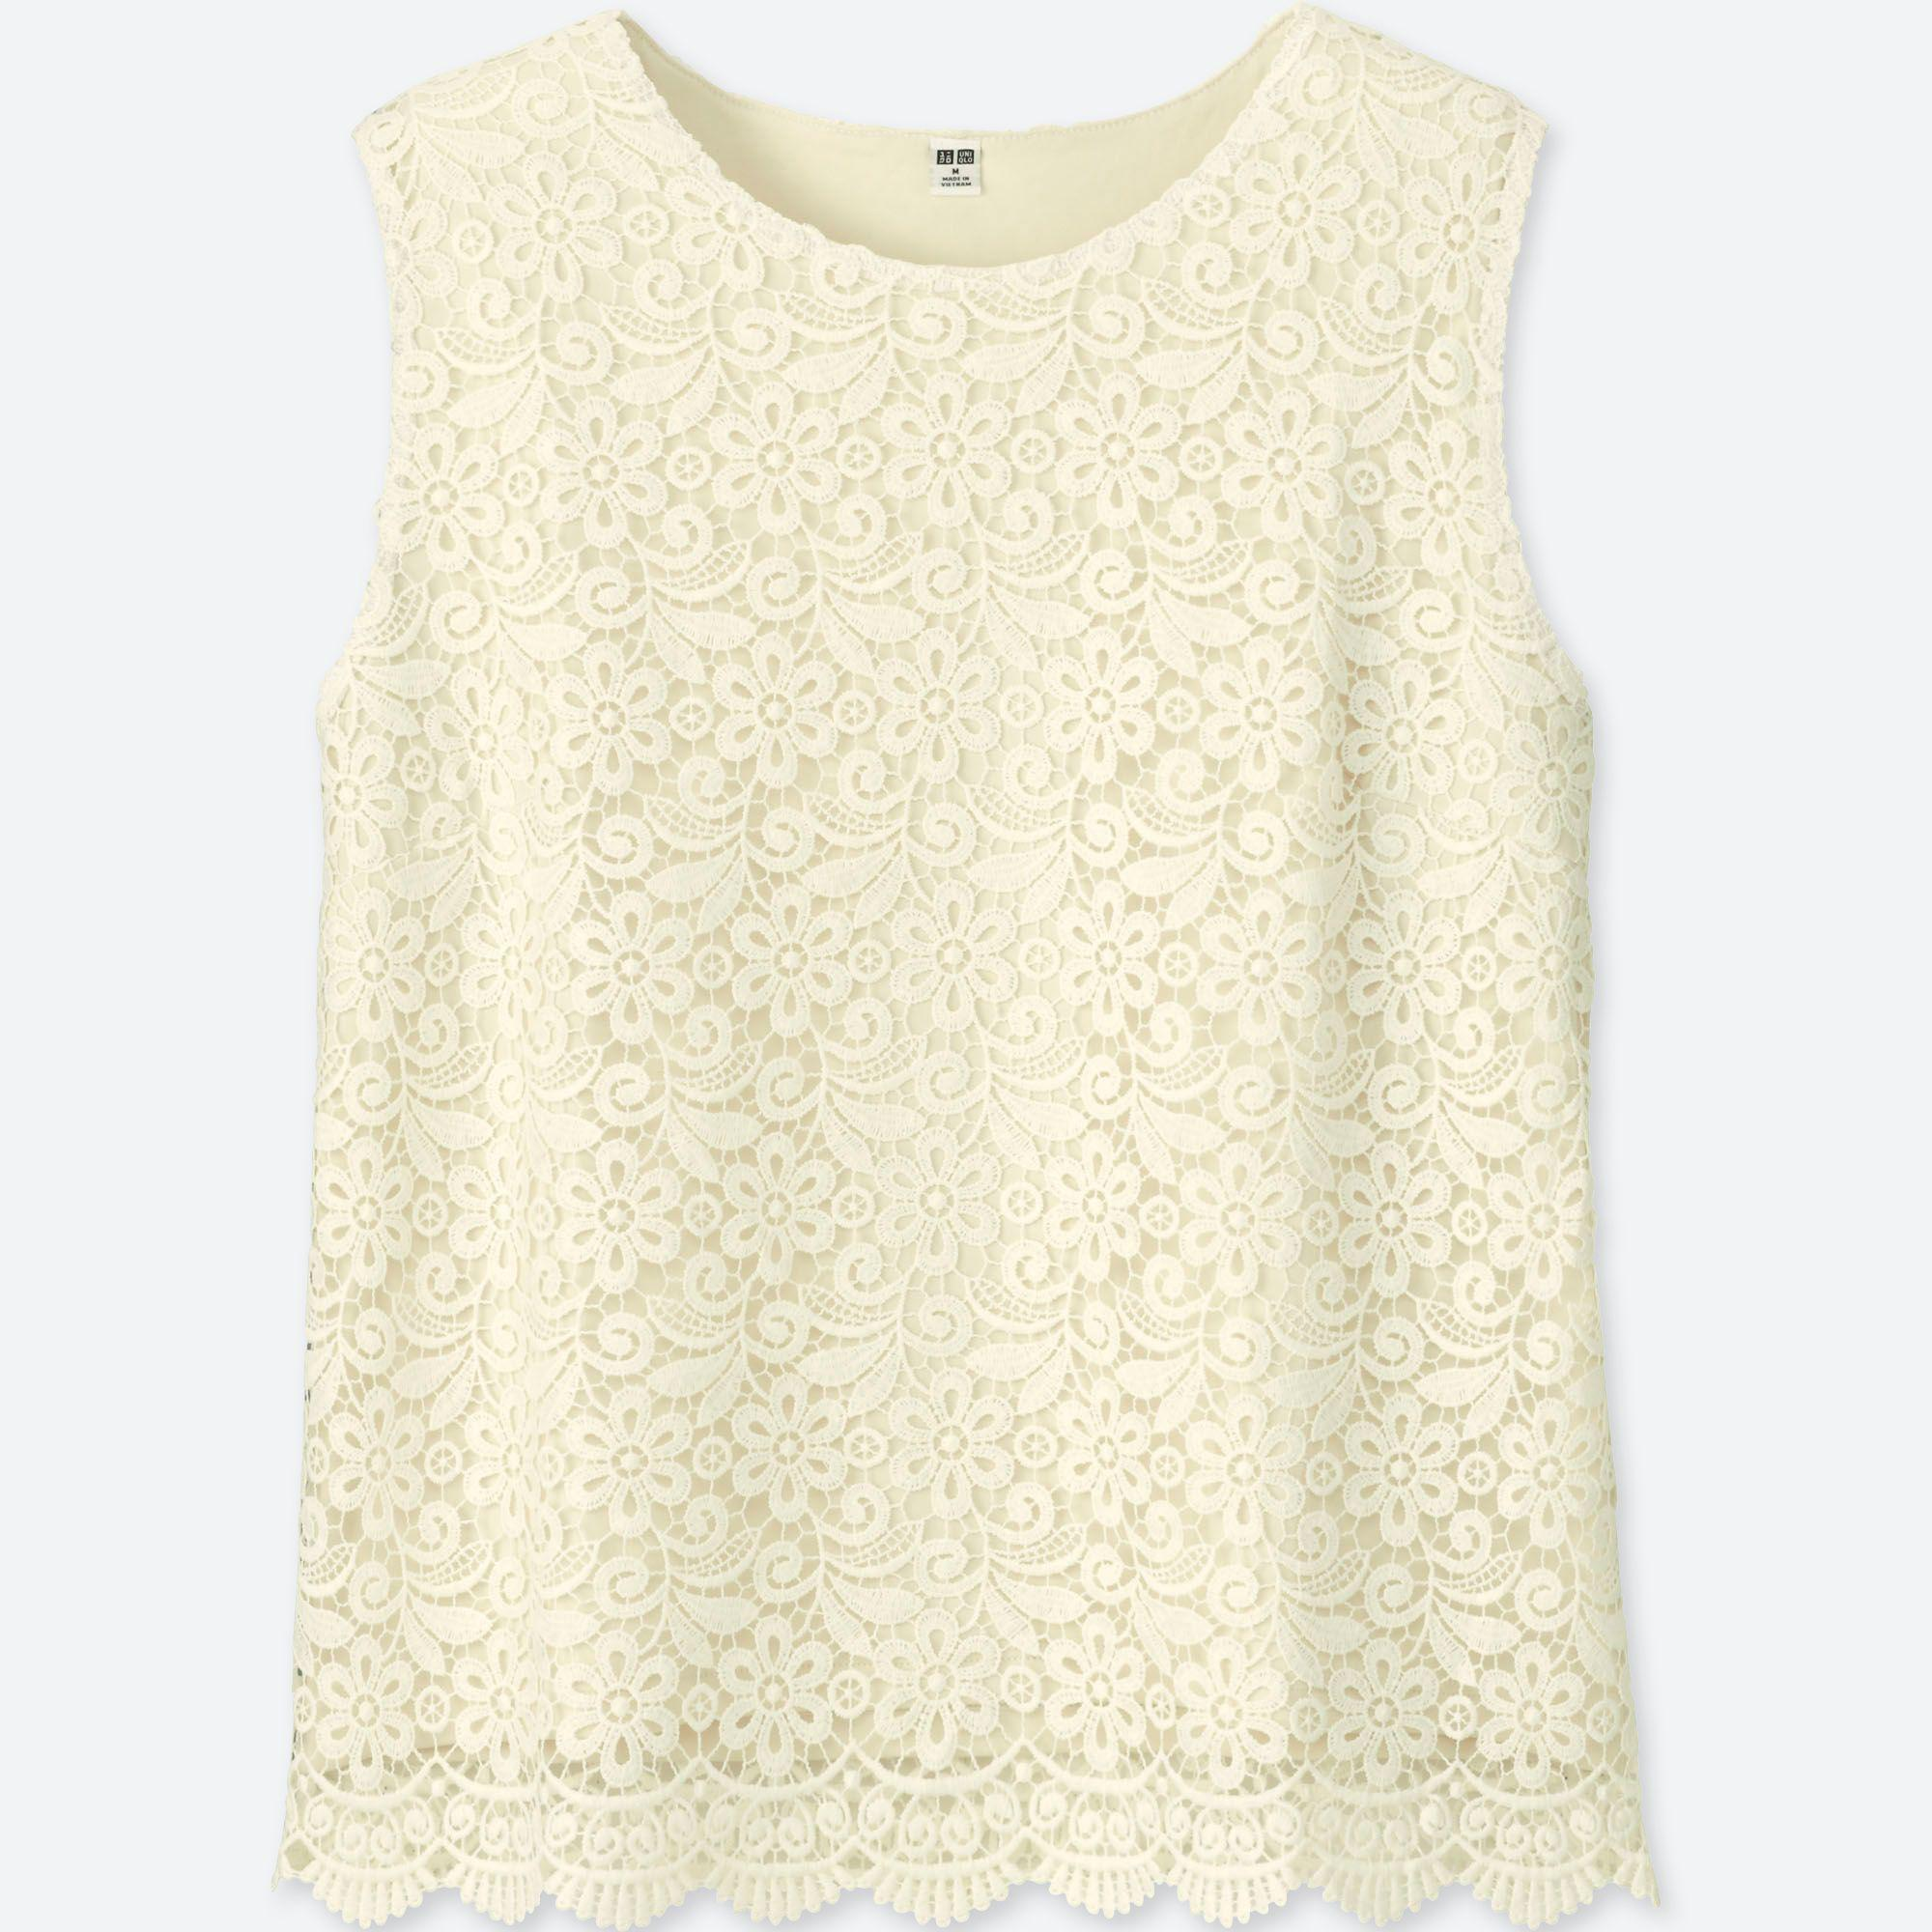 722696f10a448 Uniqlo Lace Sleeveless T-shirt in White - Lyst